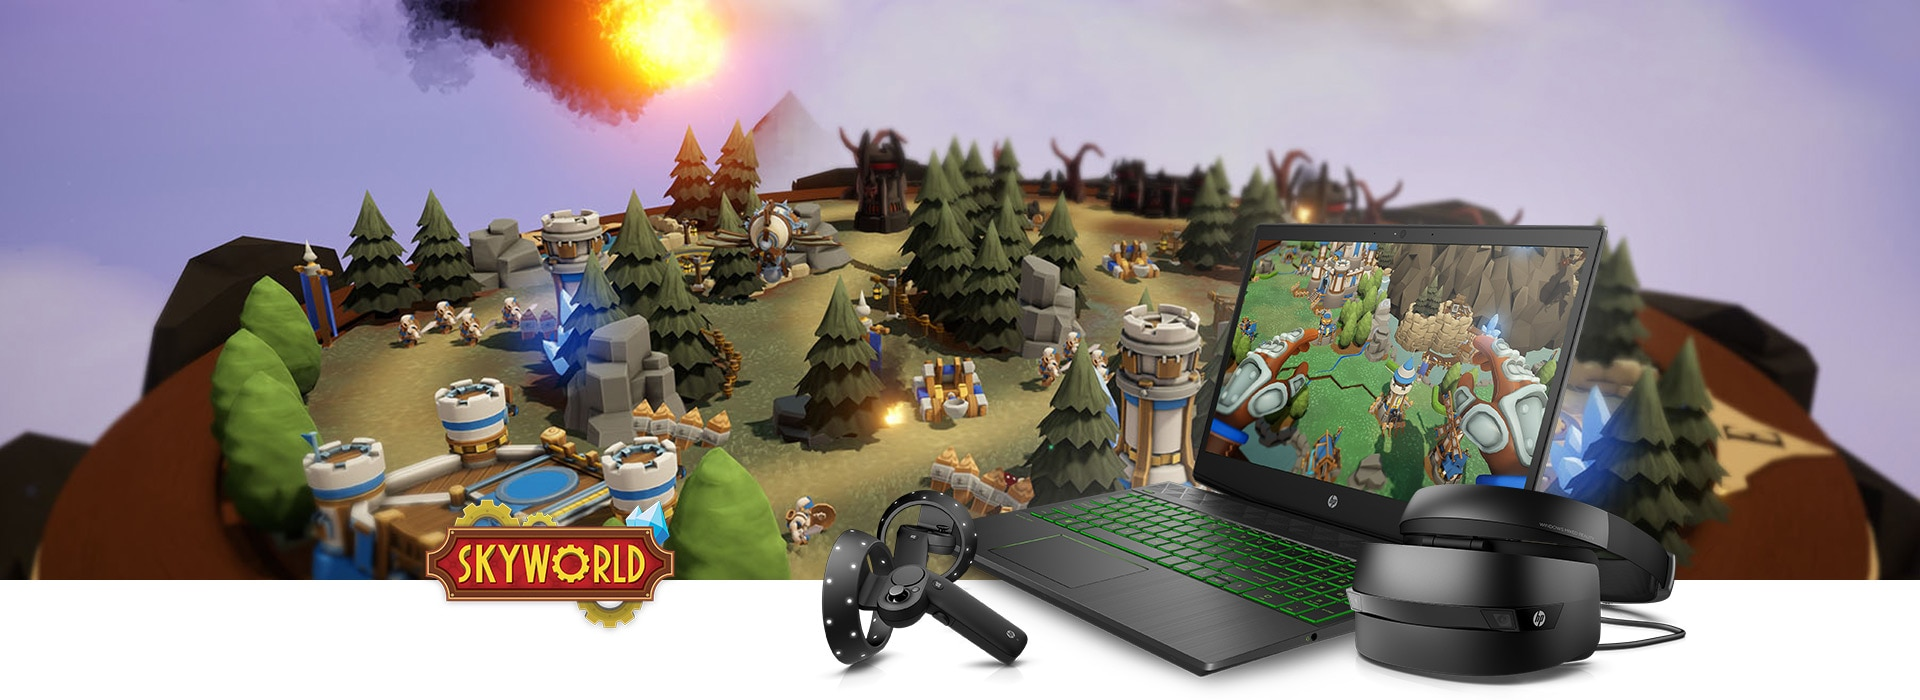 Hp Pavilion Gaming Laptop Hp Official Site